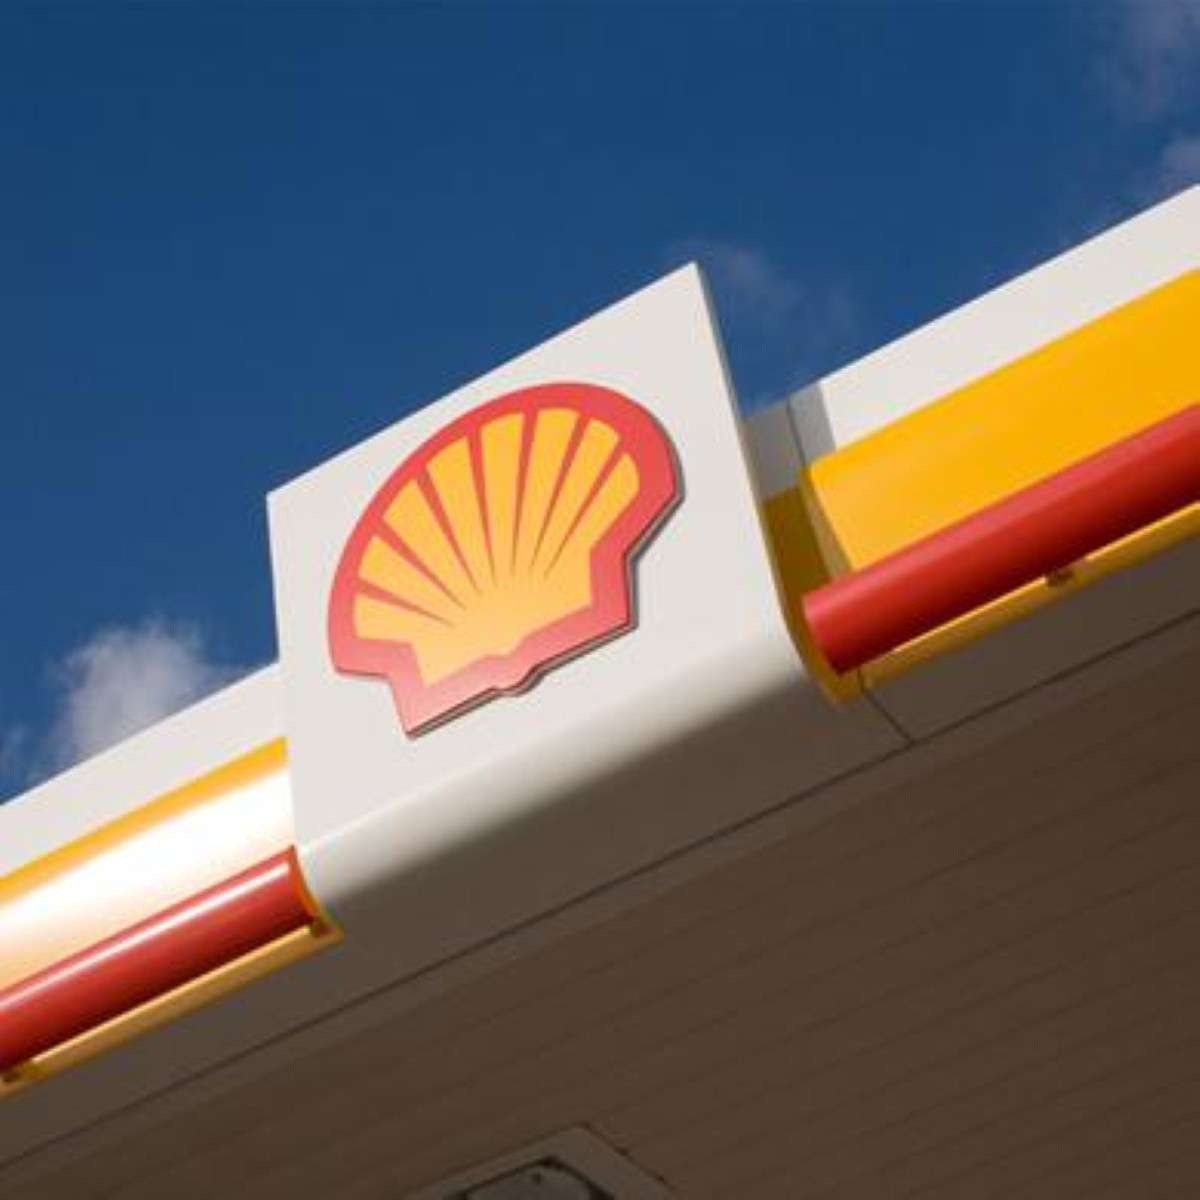 One in ten gas stations in Britain belong to Shell